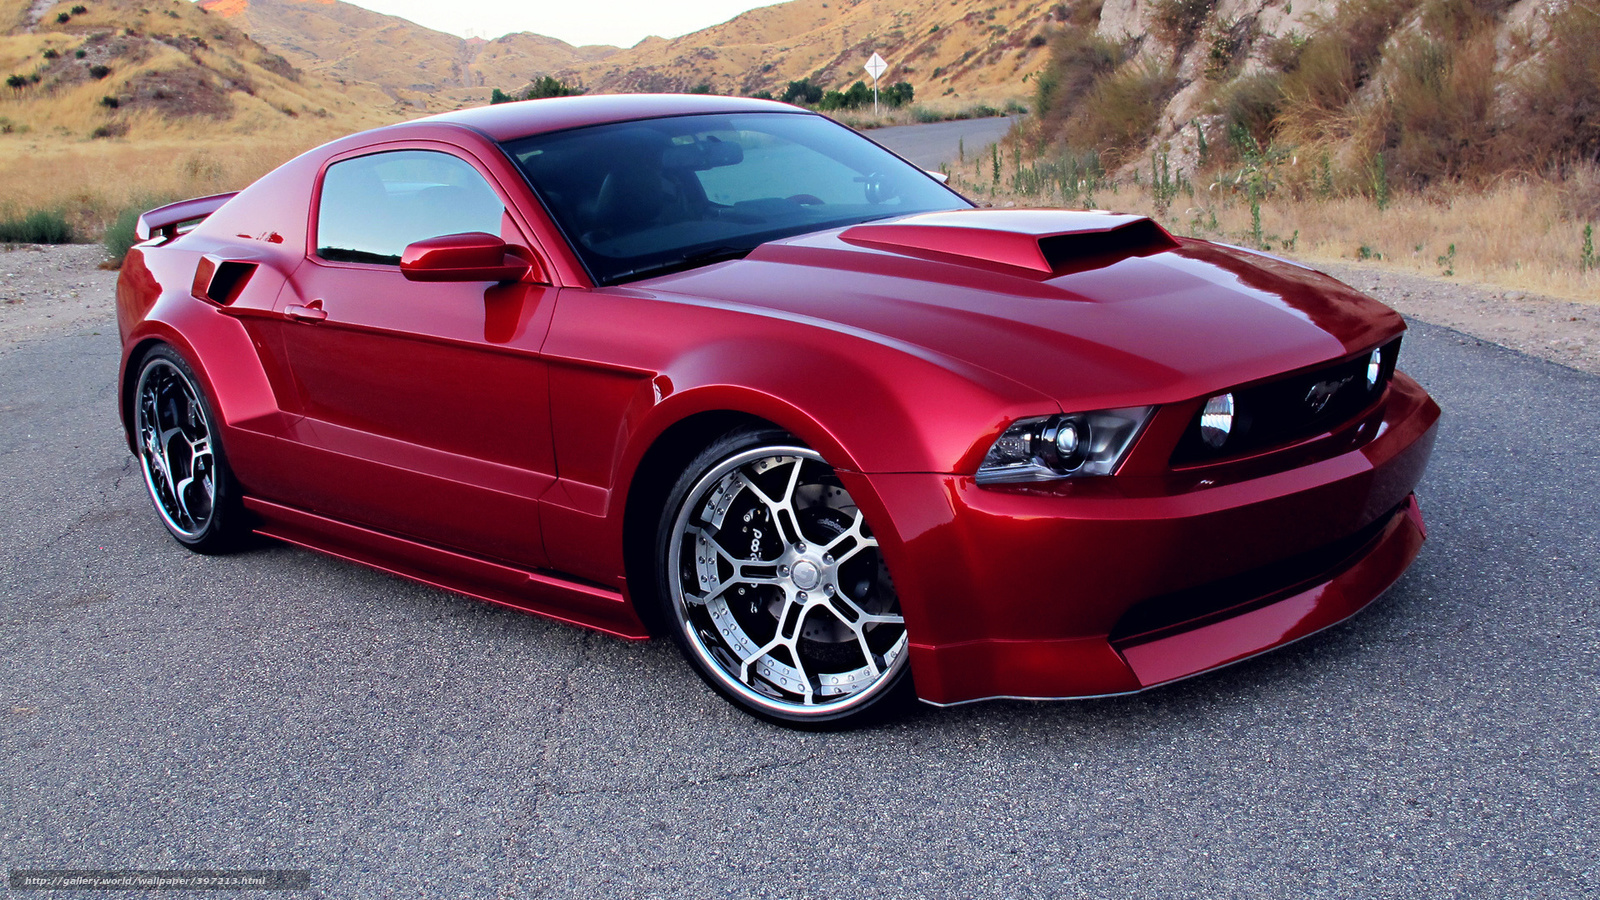 Ford Mustang GT, red, tuning, Wide Body Kit, Rims, cars, machinery, Car